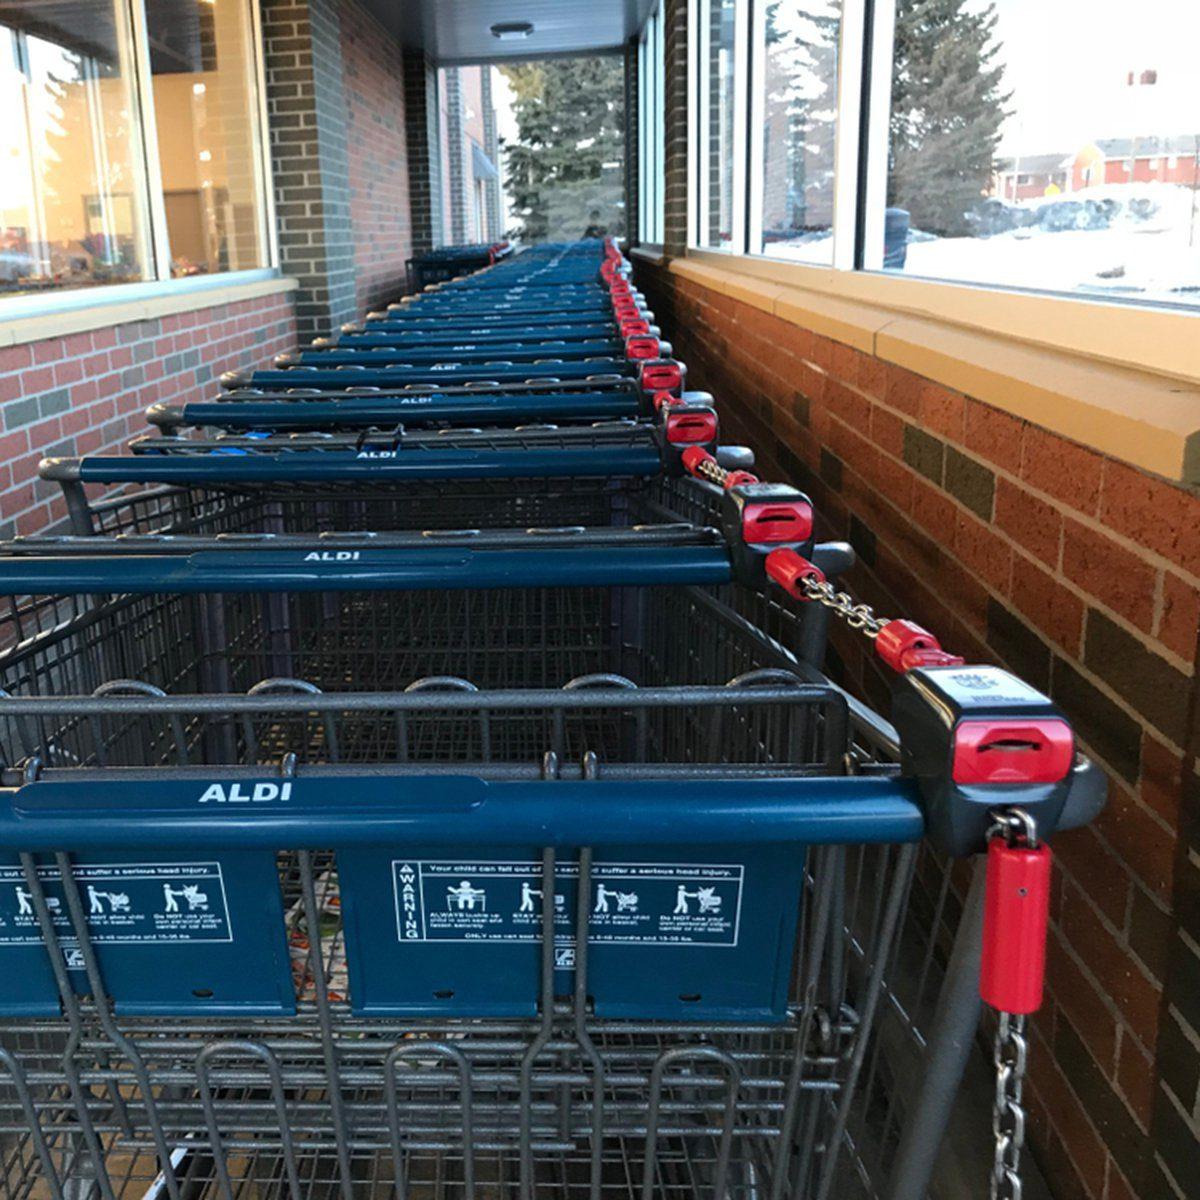 The carts outside of an Aldi Food Market store in Minnesota.